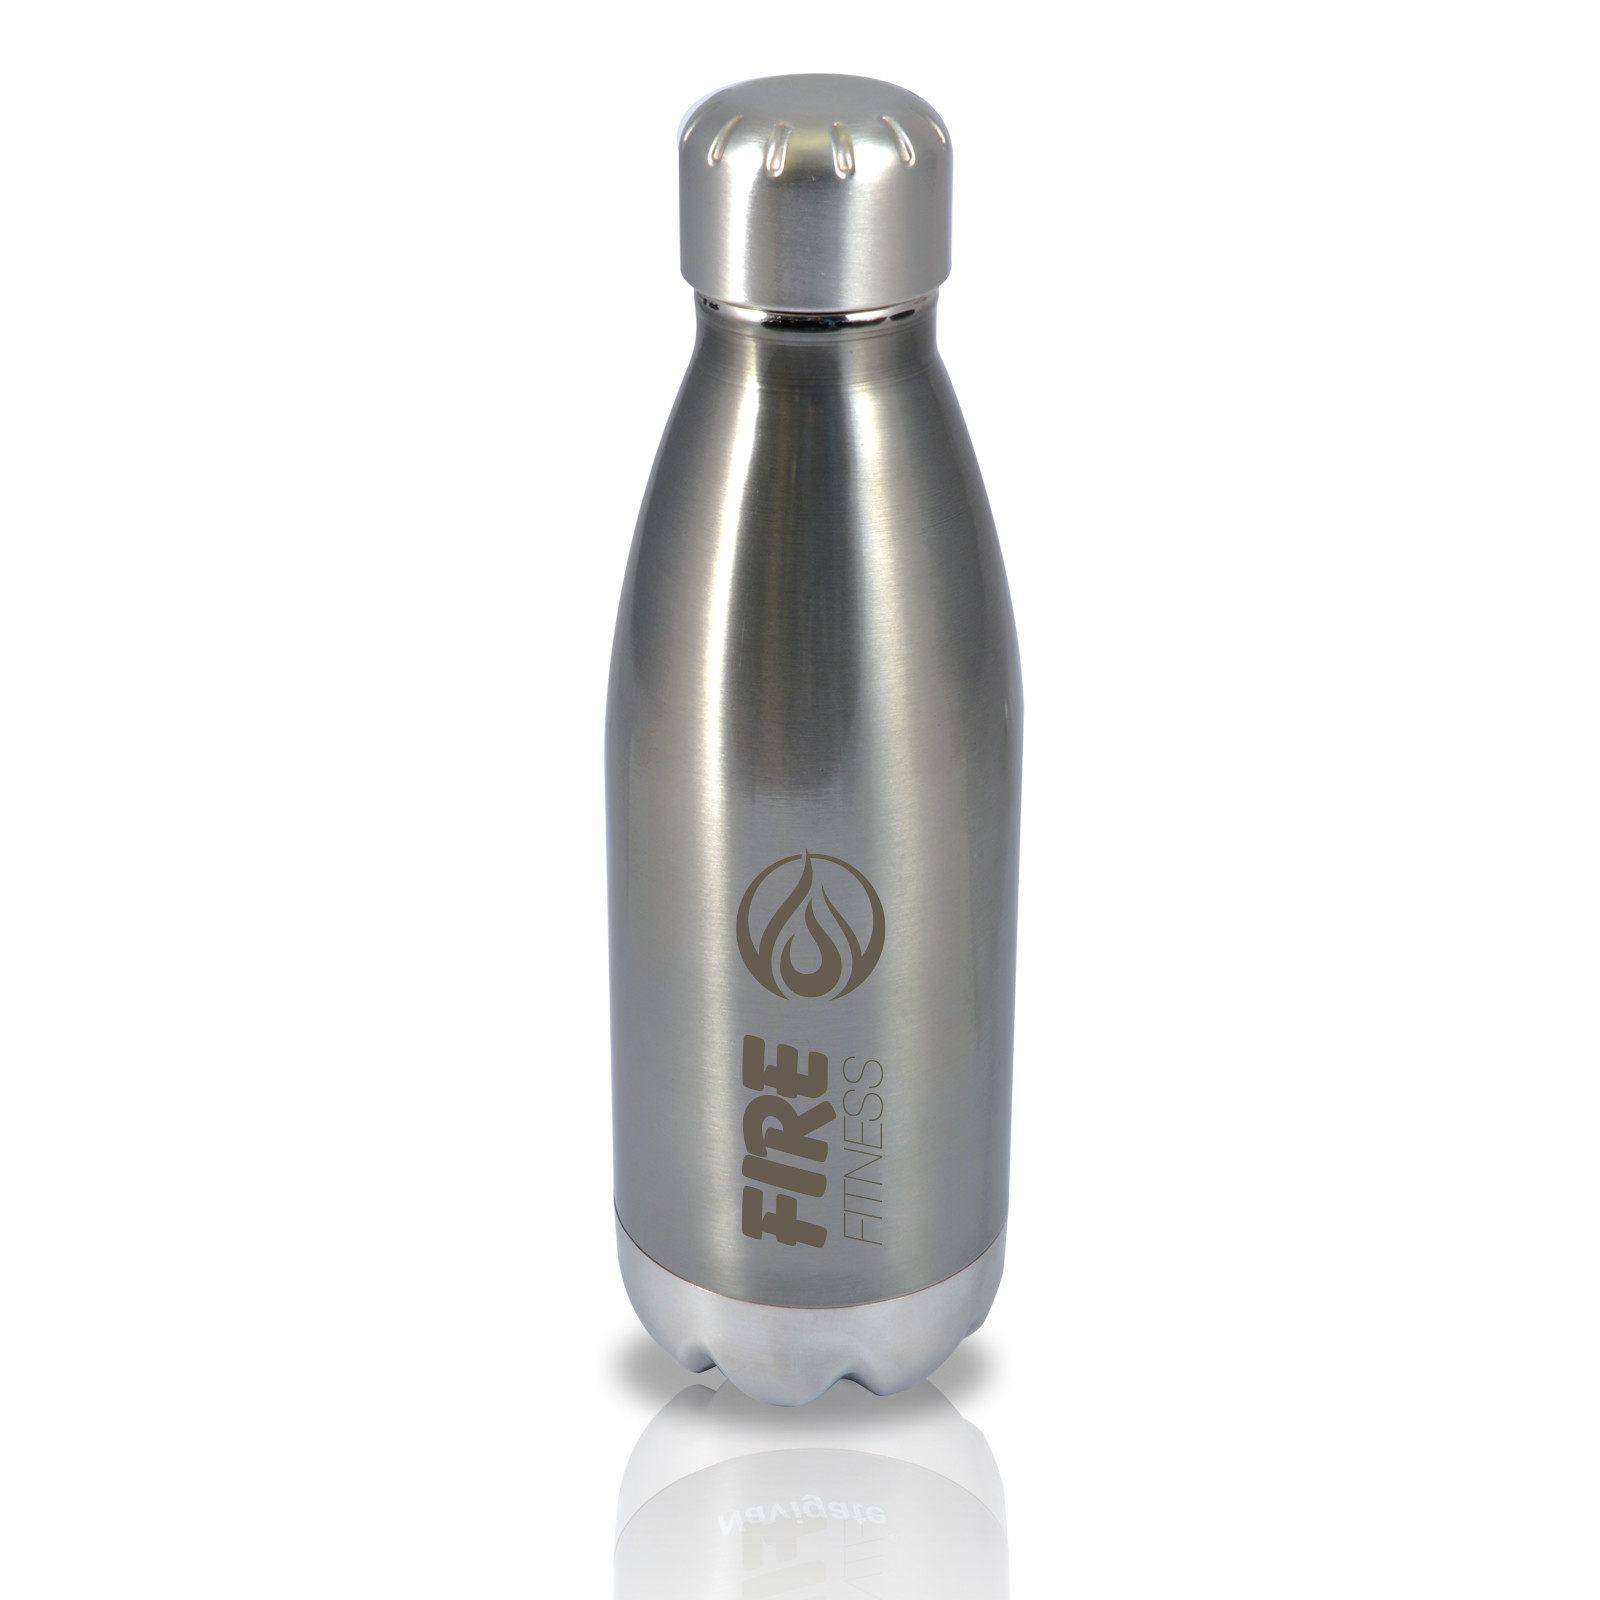 Promotional Product Stainless Steel Drink Bottle - 400ml